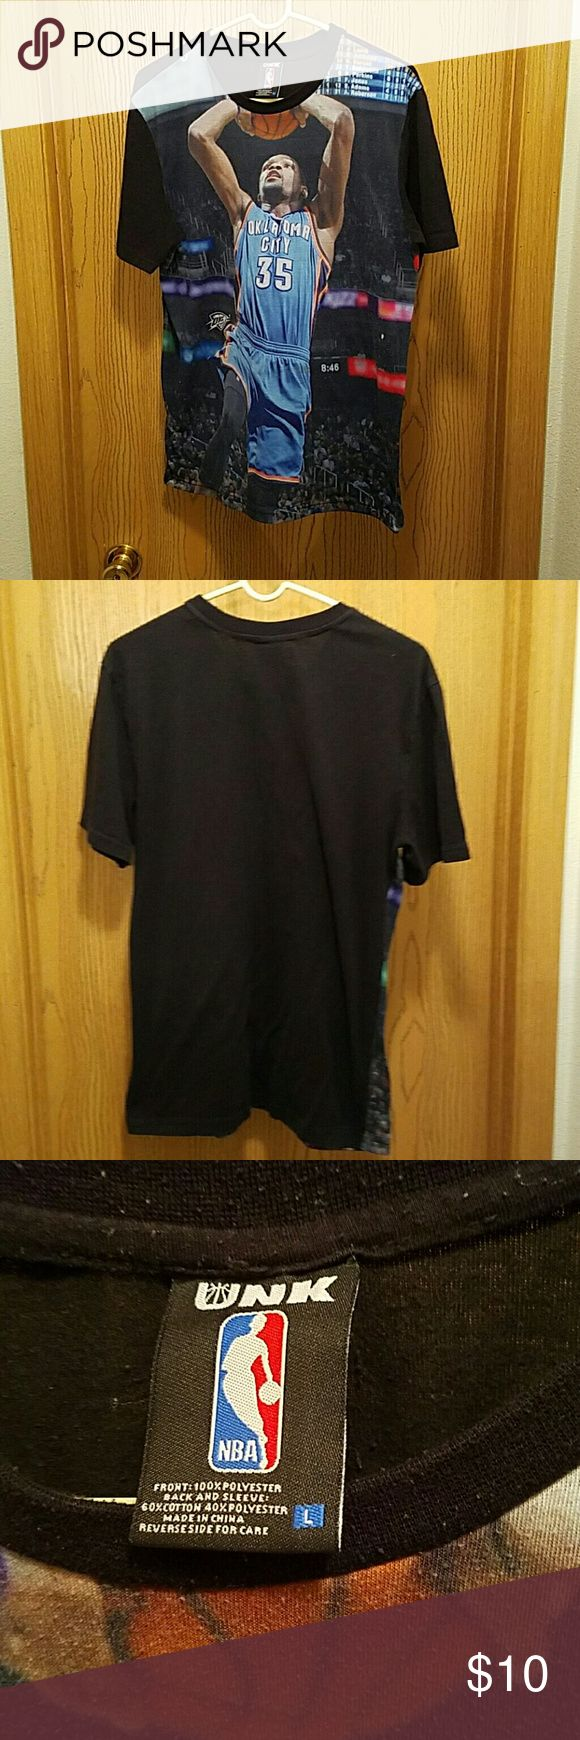 Basketball tee Size large oaklahoma city tee. Front has rough feel but was bought that way. No rips or stains Shirts Tees - Short Sleeve